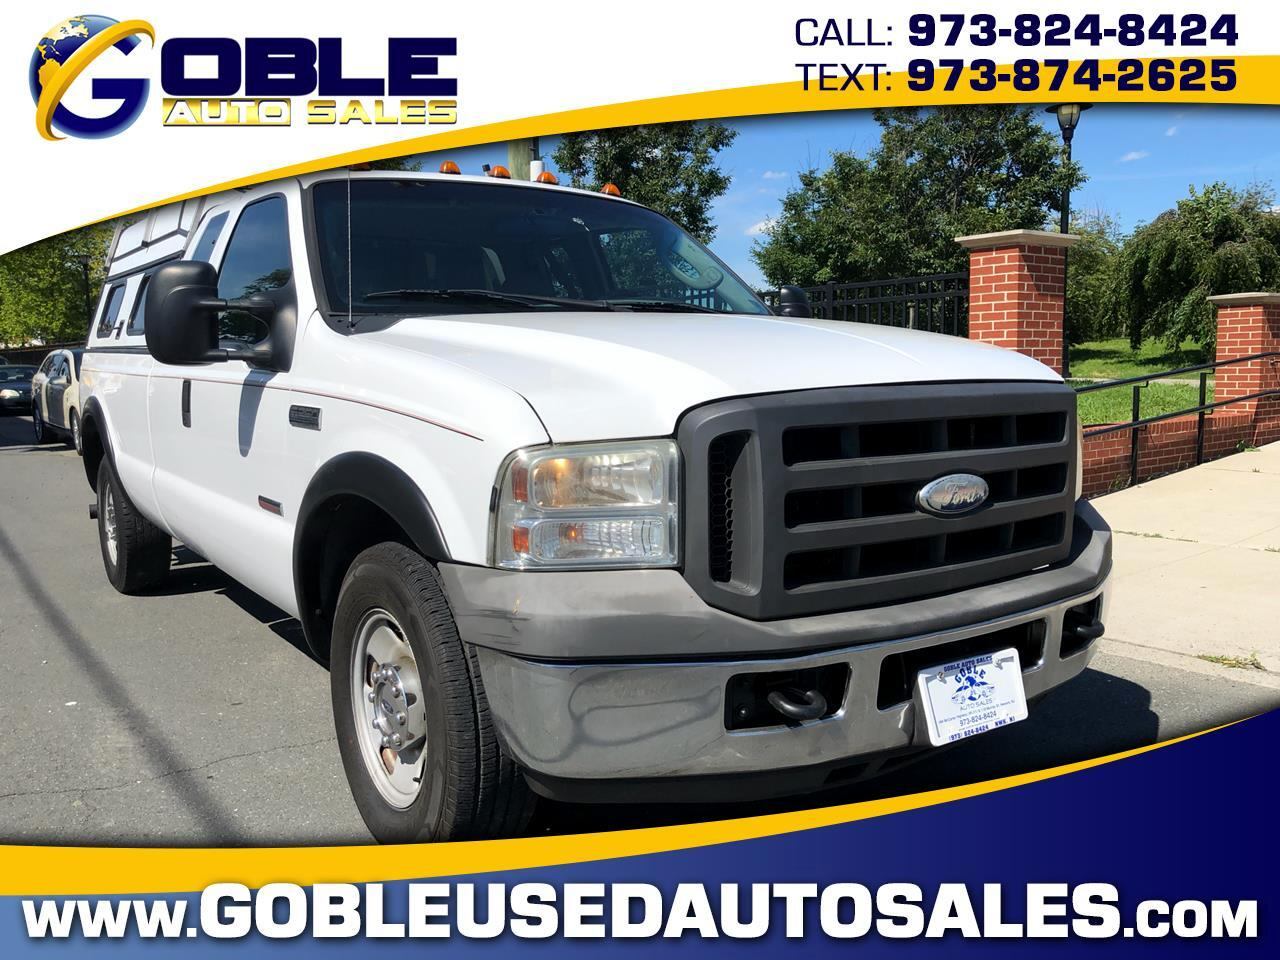 2005 Ford Super Duty F-250 2WD Crew Cab 156